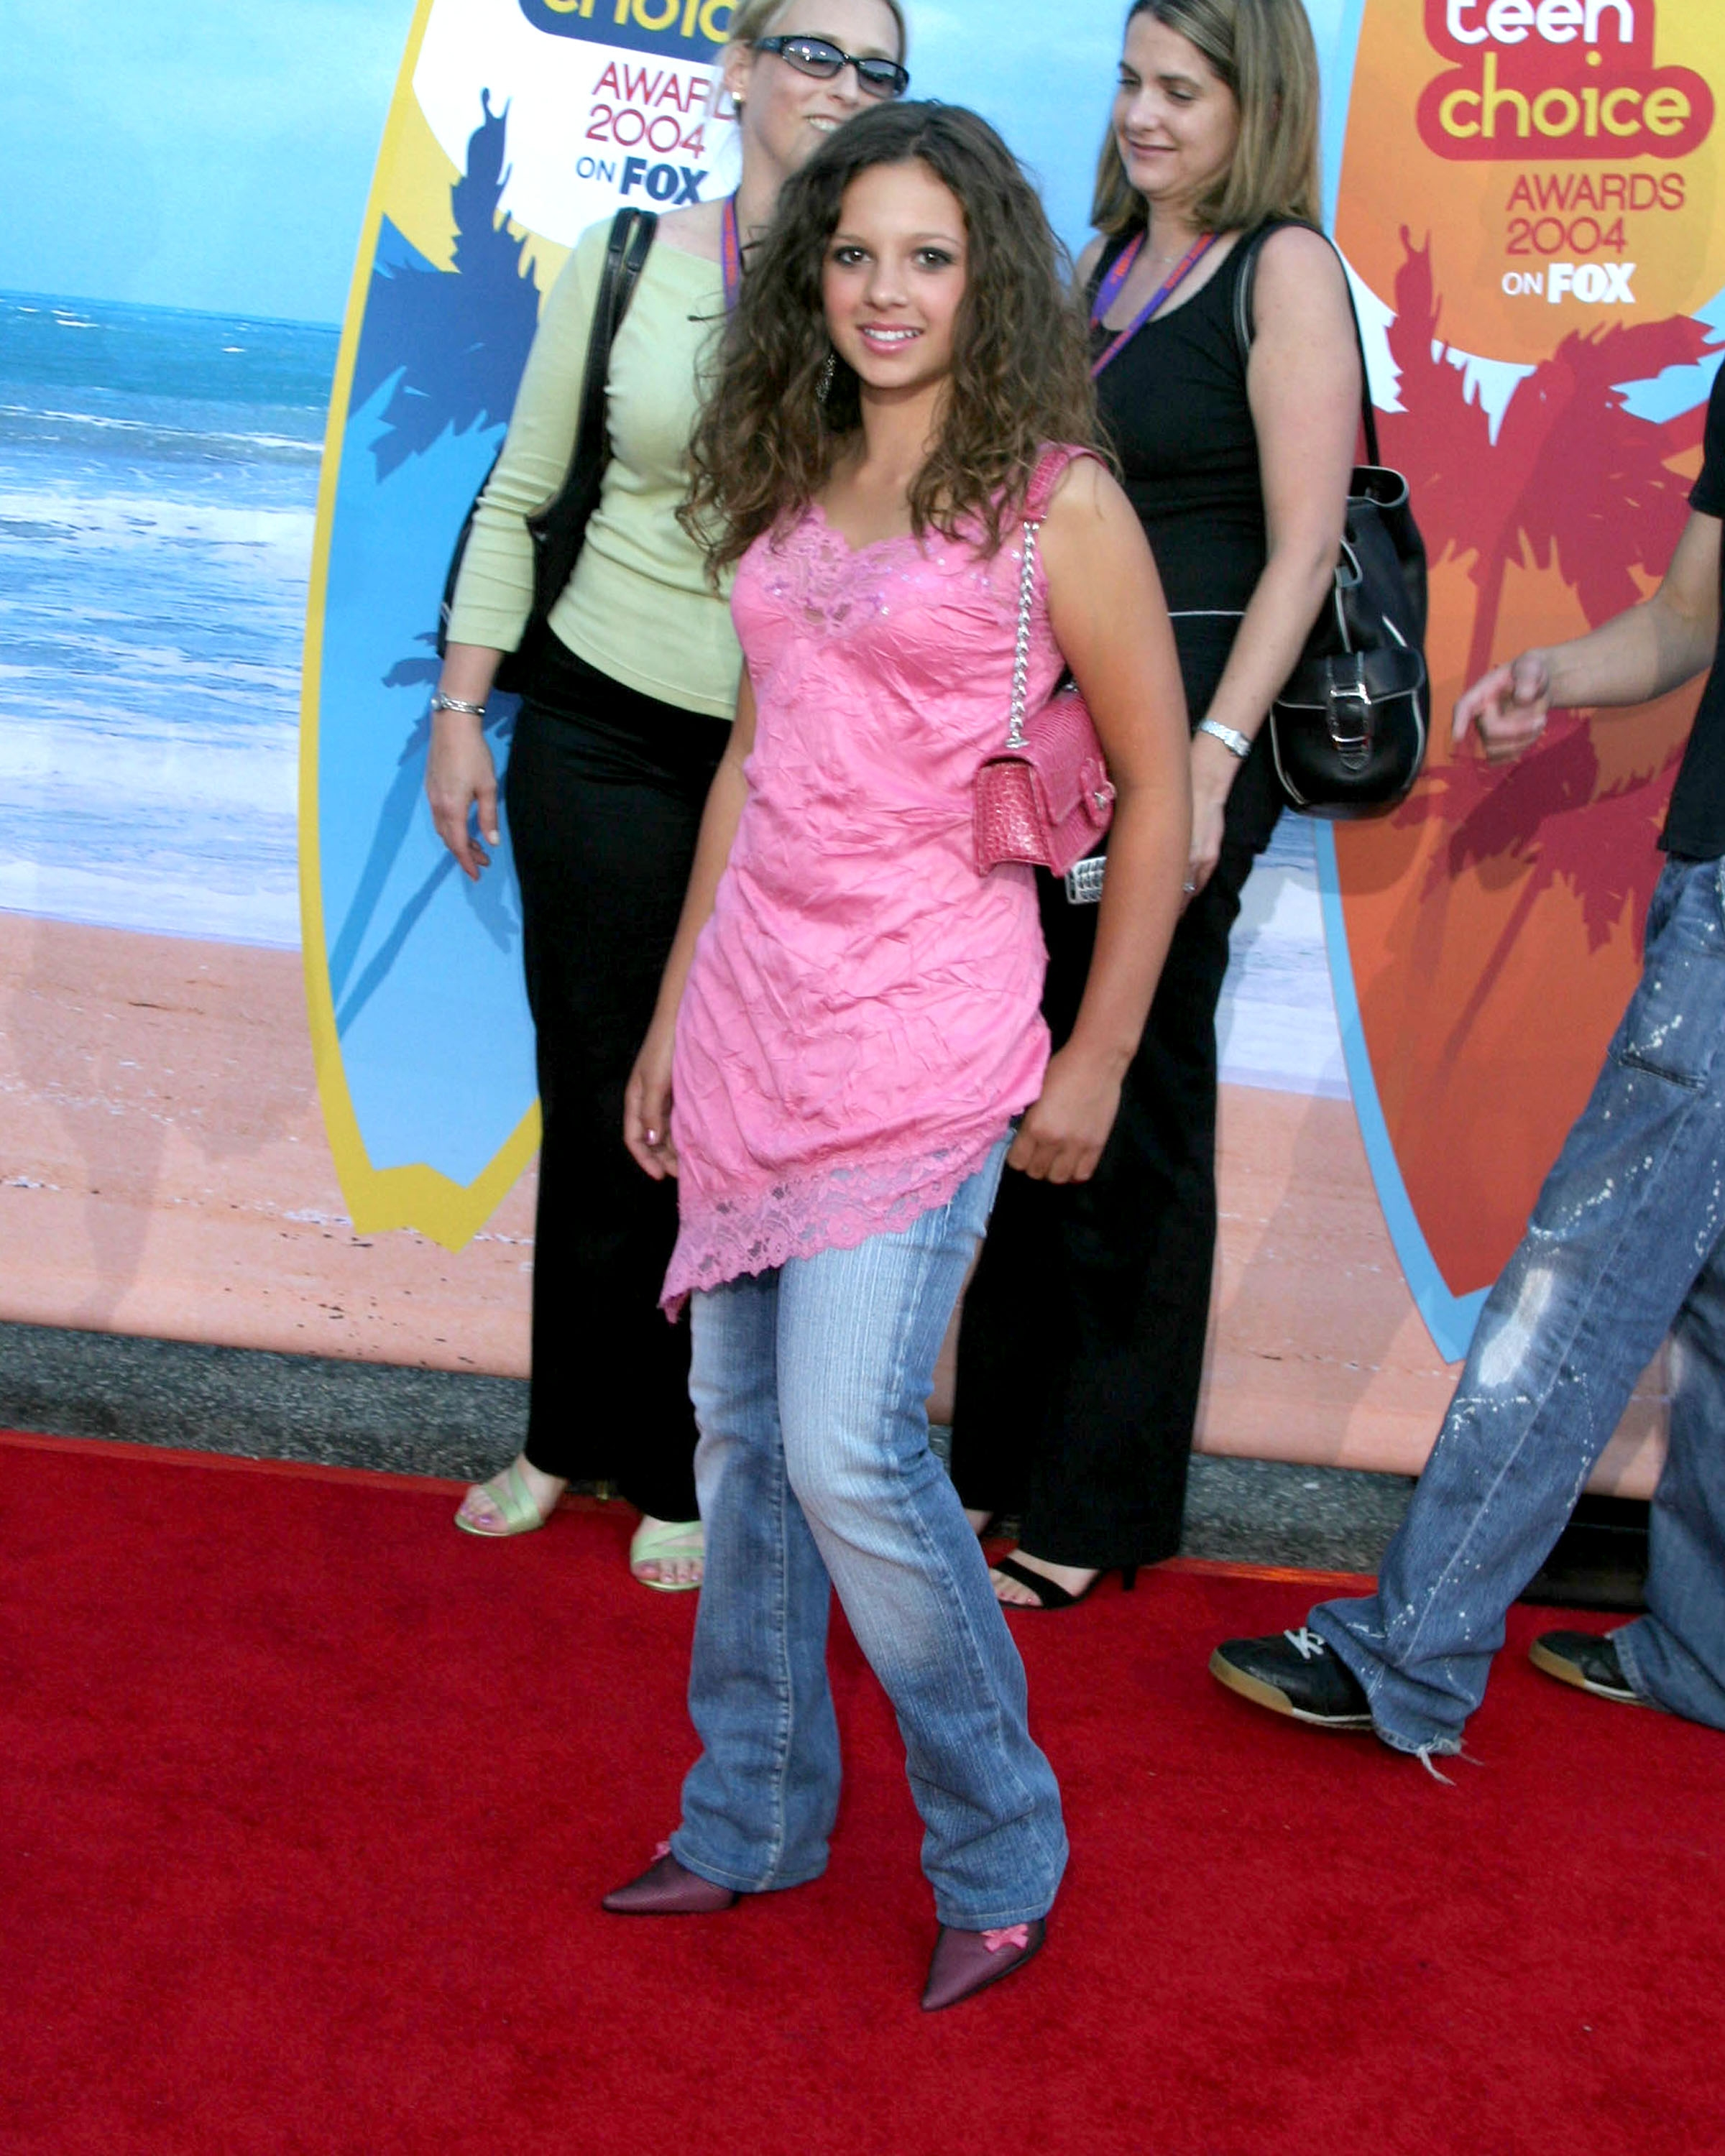 Photos de Mackenzie Rosman - Teen Choice Awards 2004 - 2